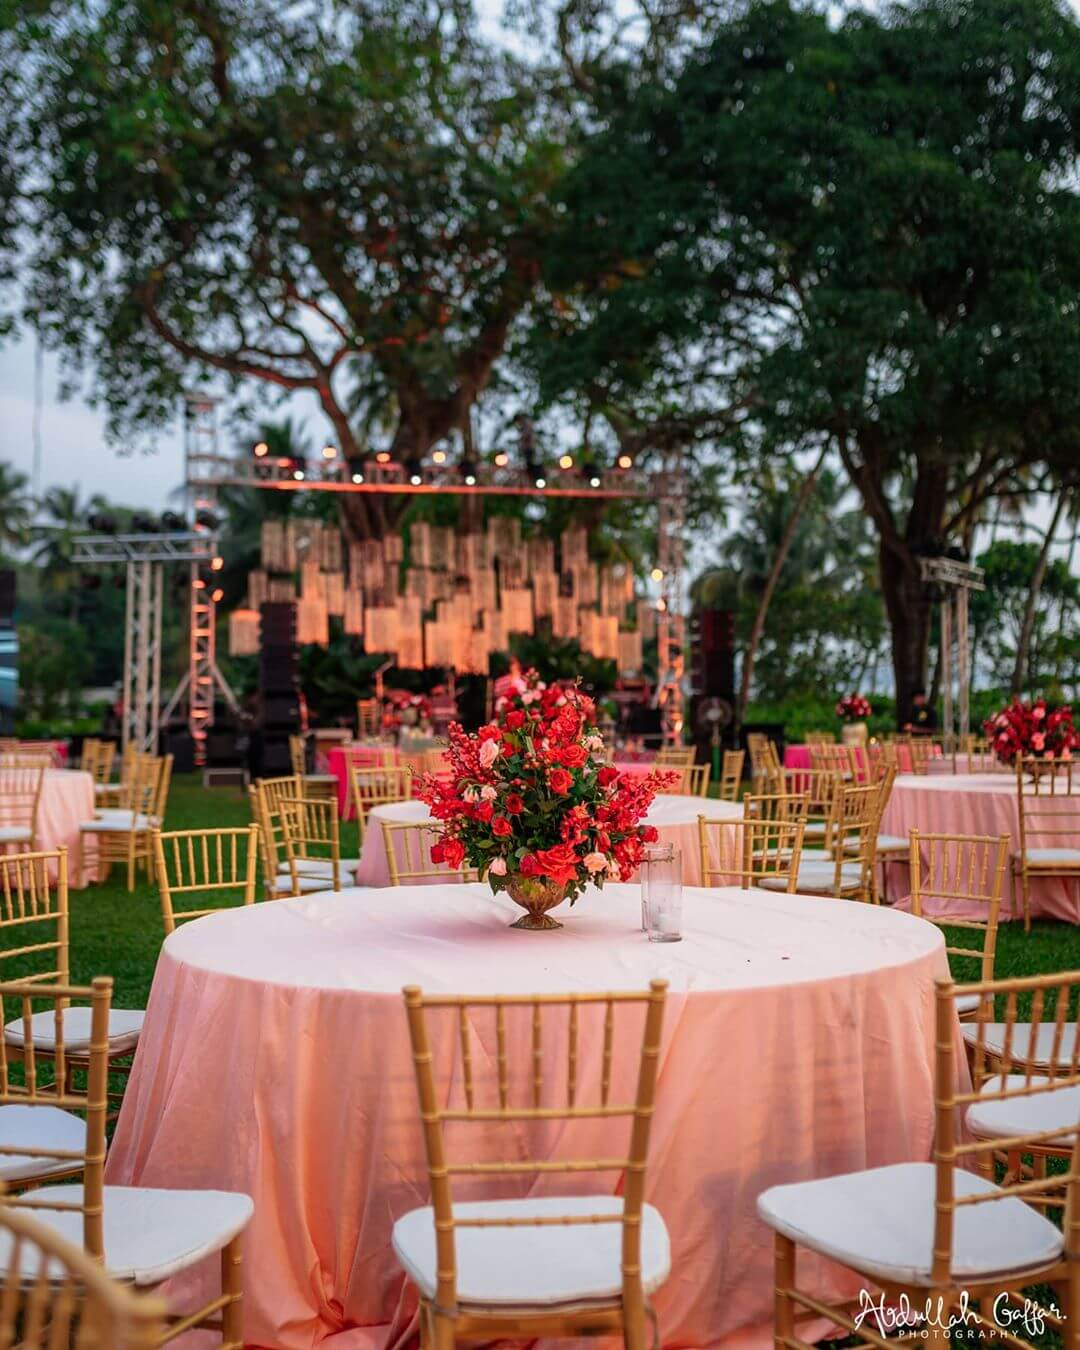 30+ Pretty Table Centerpieces Ideas to Level up Your Wedding Game